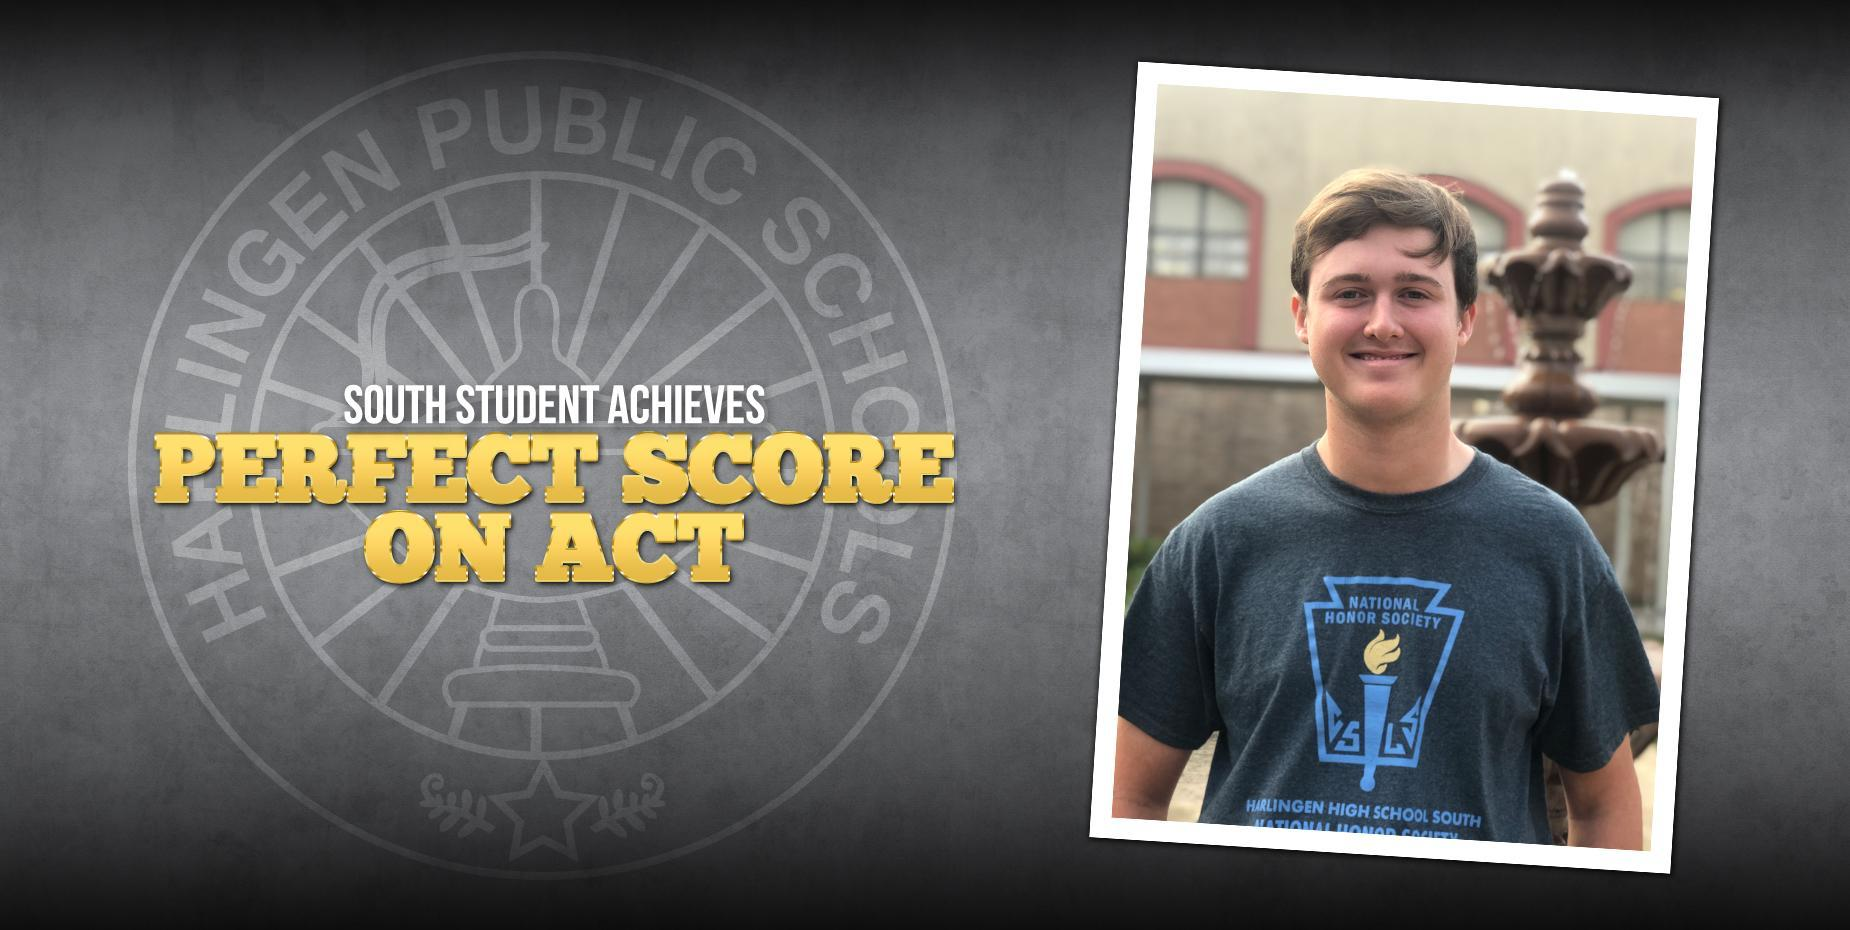 South Student Achieves Perfect Score on ACT